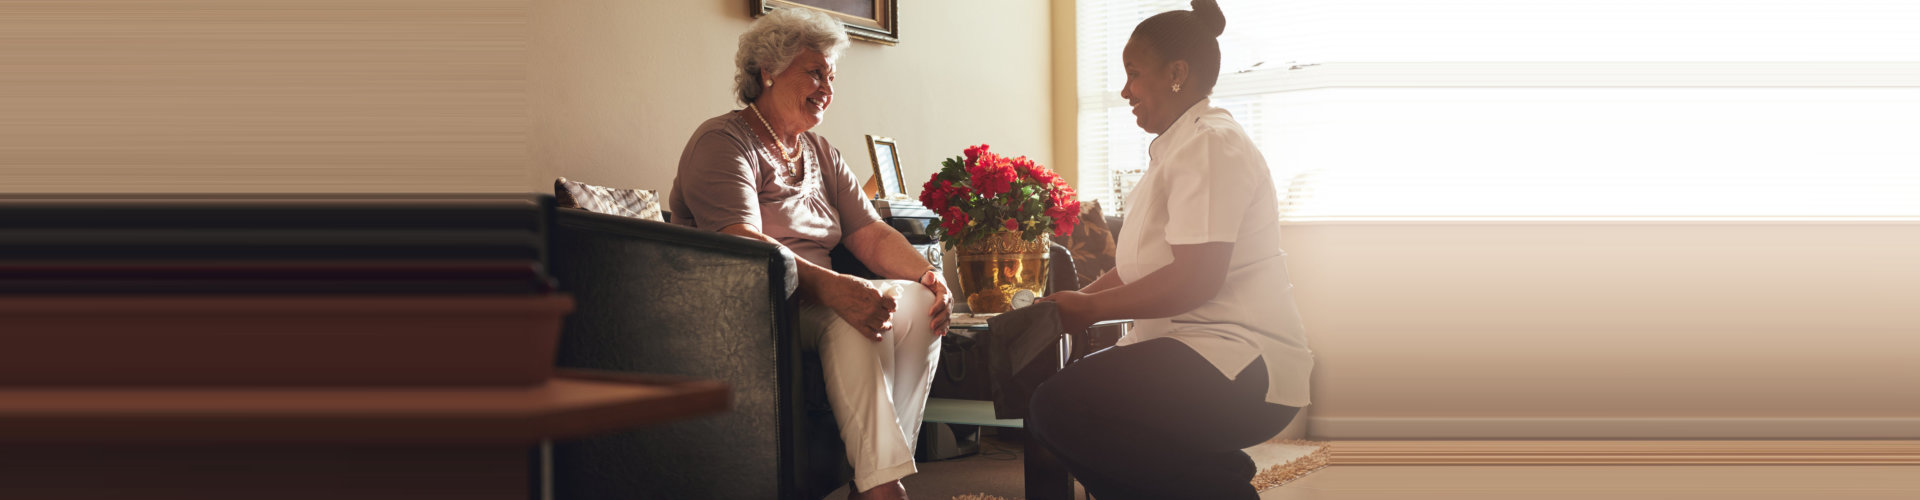 elder woman sitting on the couch with caregiver concept